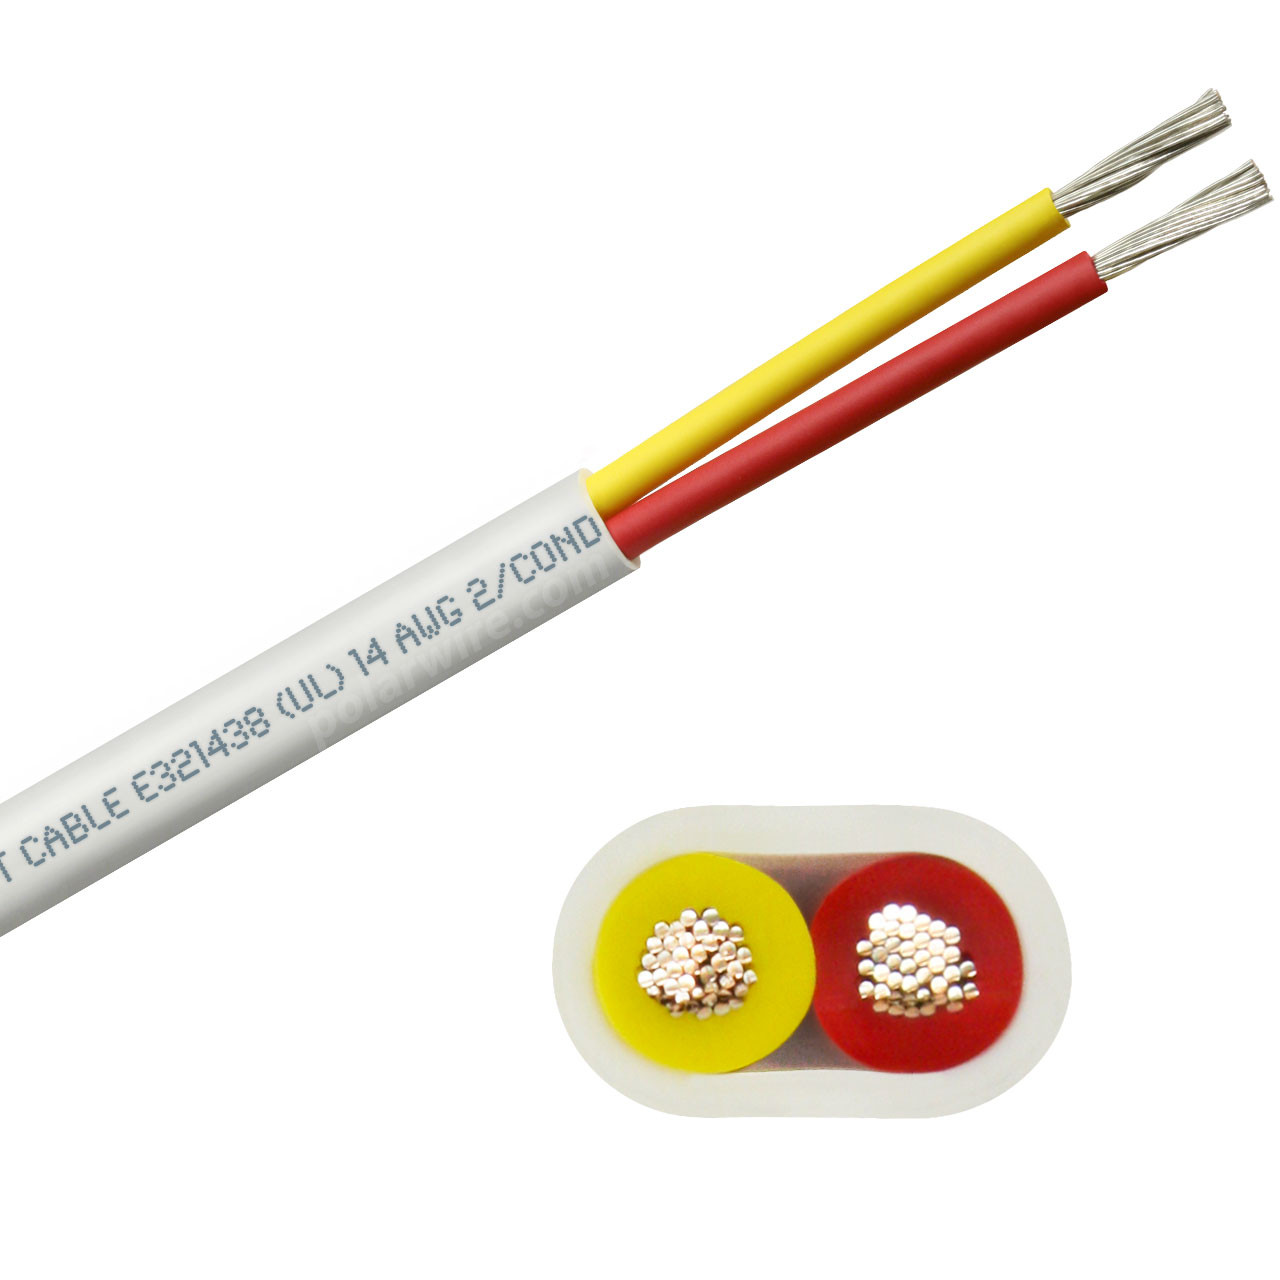 14 AWG flat yellow and red safety dc duplex marine grade tinned copper bc5w2 boat cable features ultra flexible Class K fine copper stranding for flexibility and conductivity, exceeds ABYC standards, UL Listed, CSA Certified